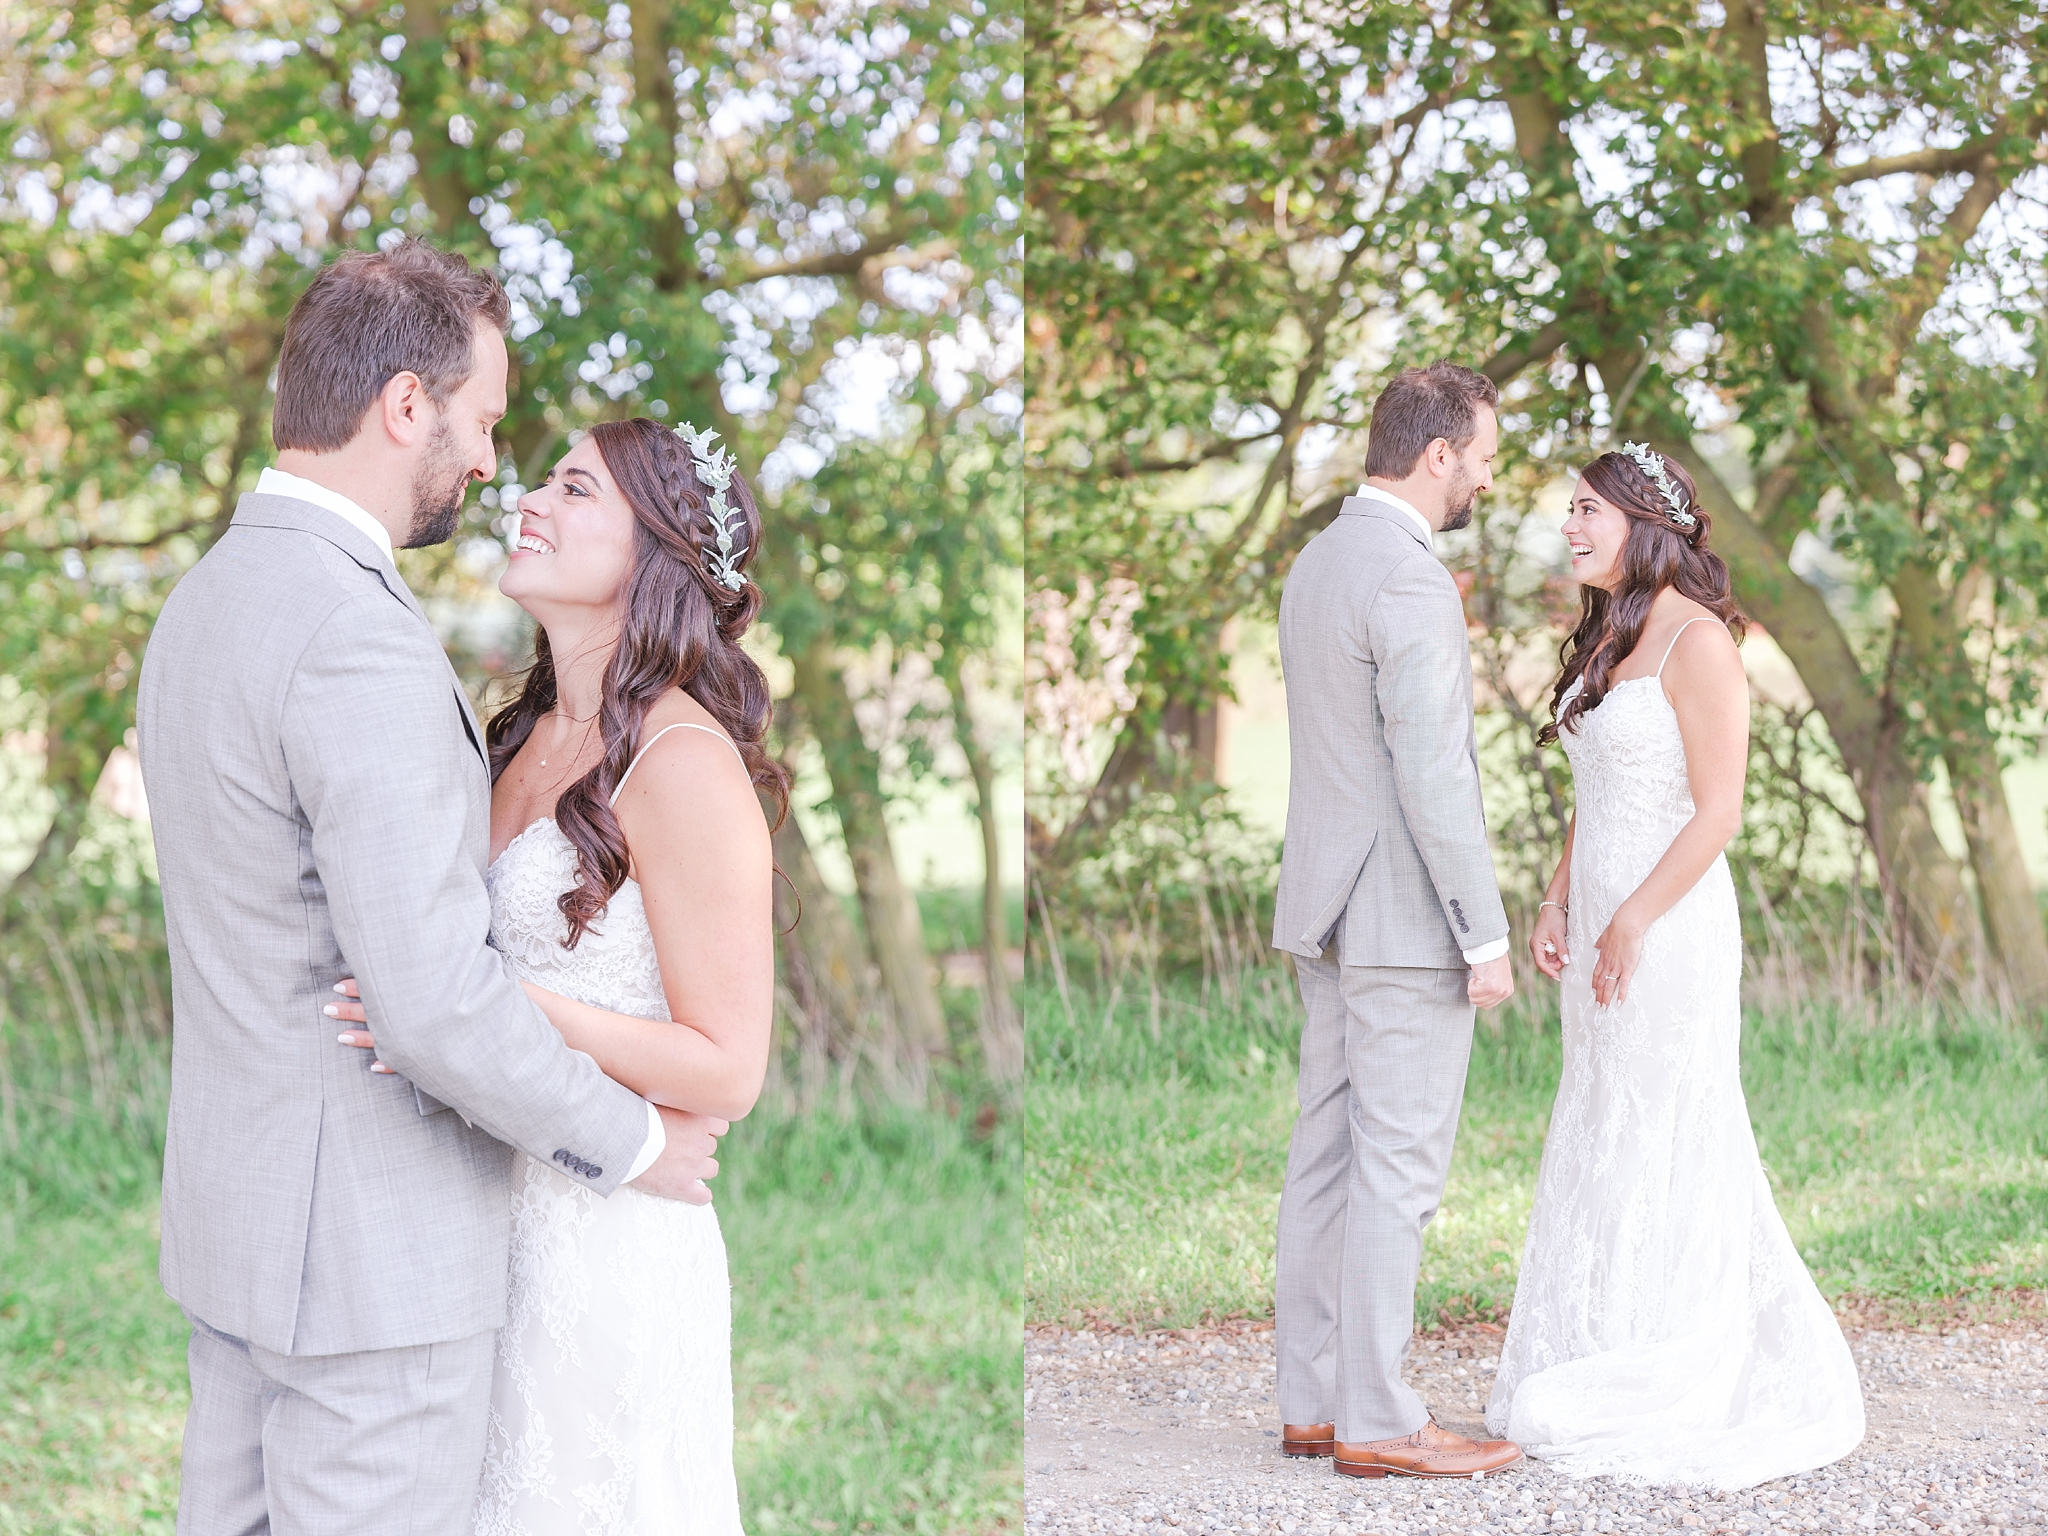 natural-rustic-wedding-photos-at-frutig-farms-the-valley-in-ann-arbor-michigan-by-courtney-carolyn-photography_0021.jpg